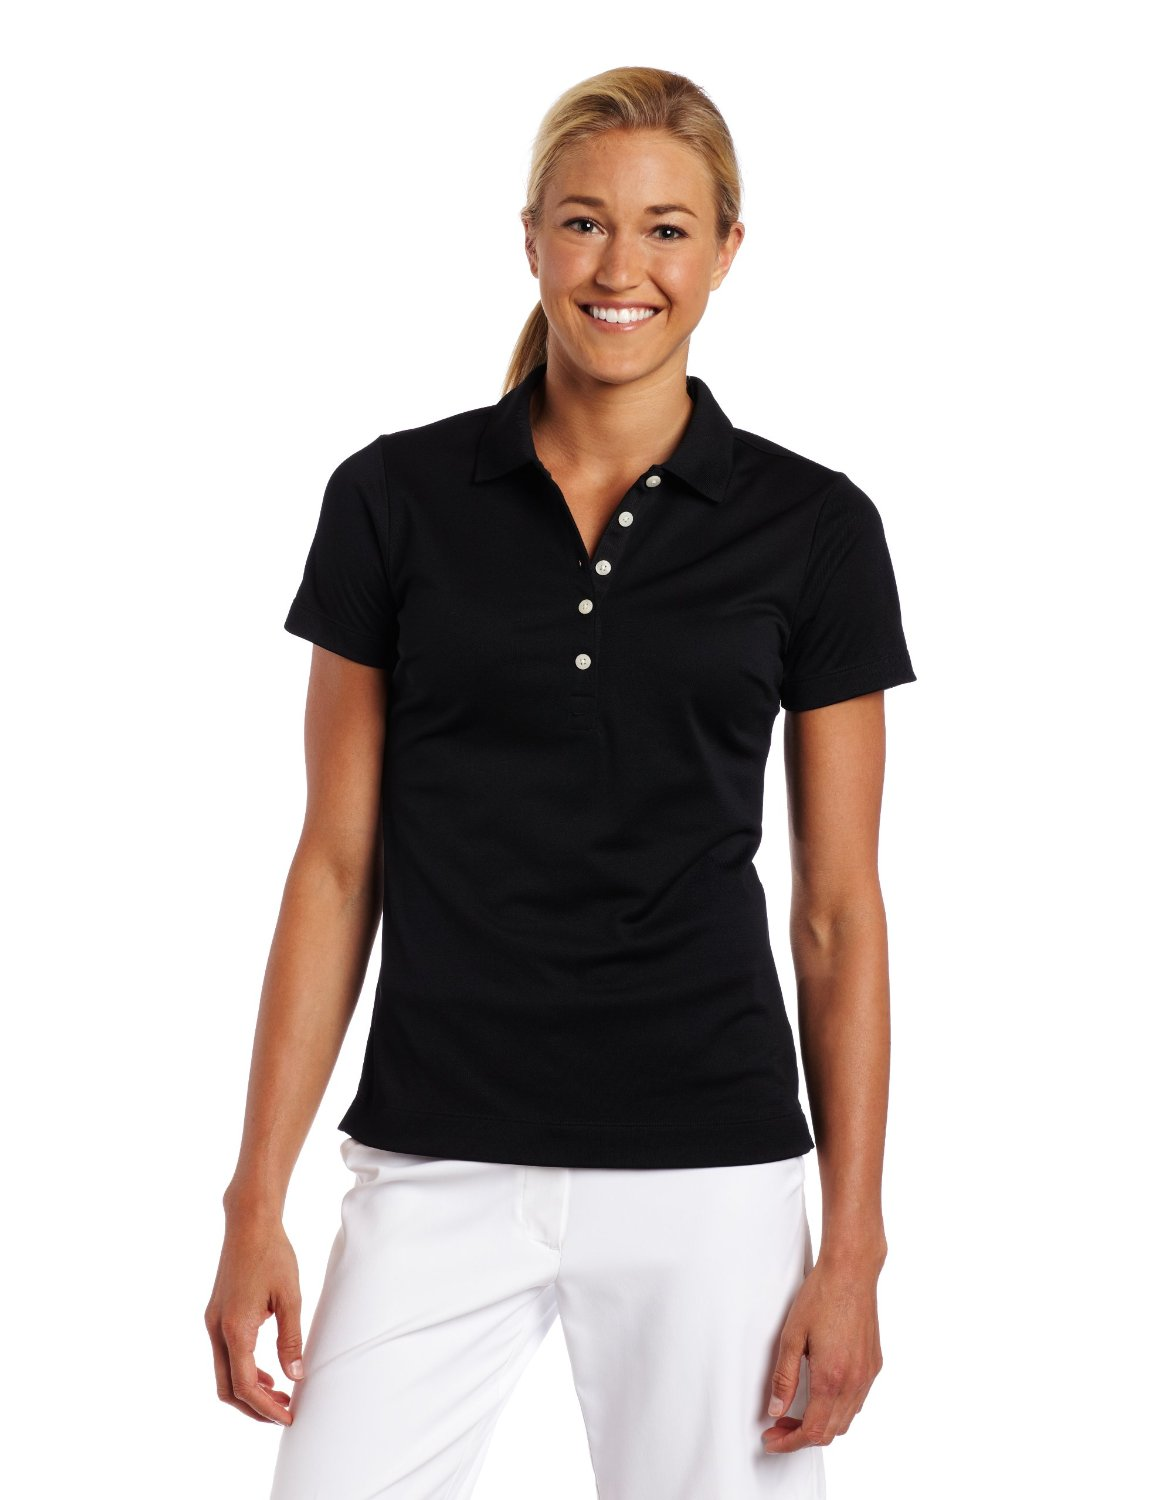 Nike Ladies Tech Pique Polo Shirt Black XL - 394665 | eBay